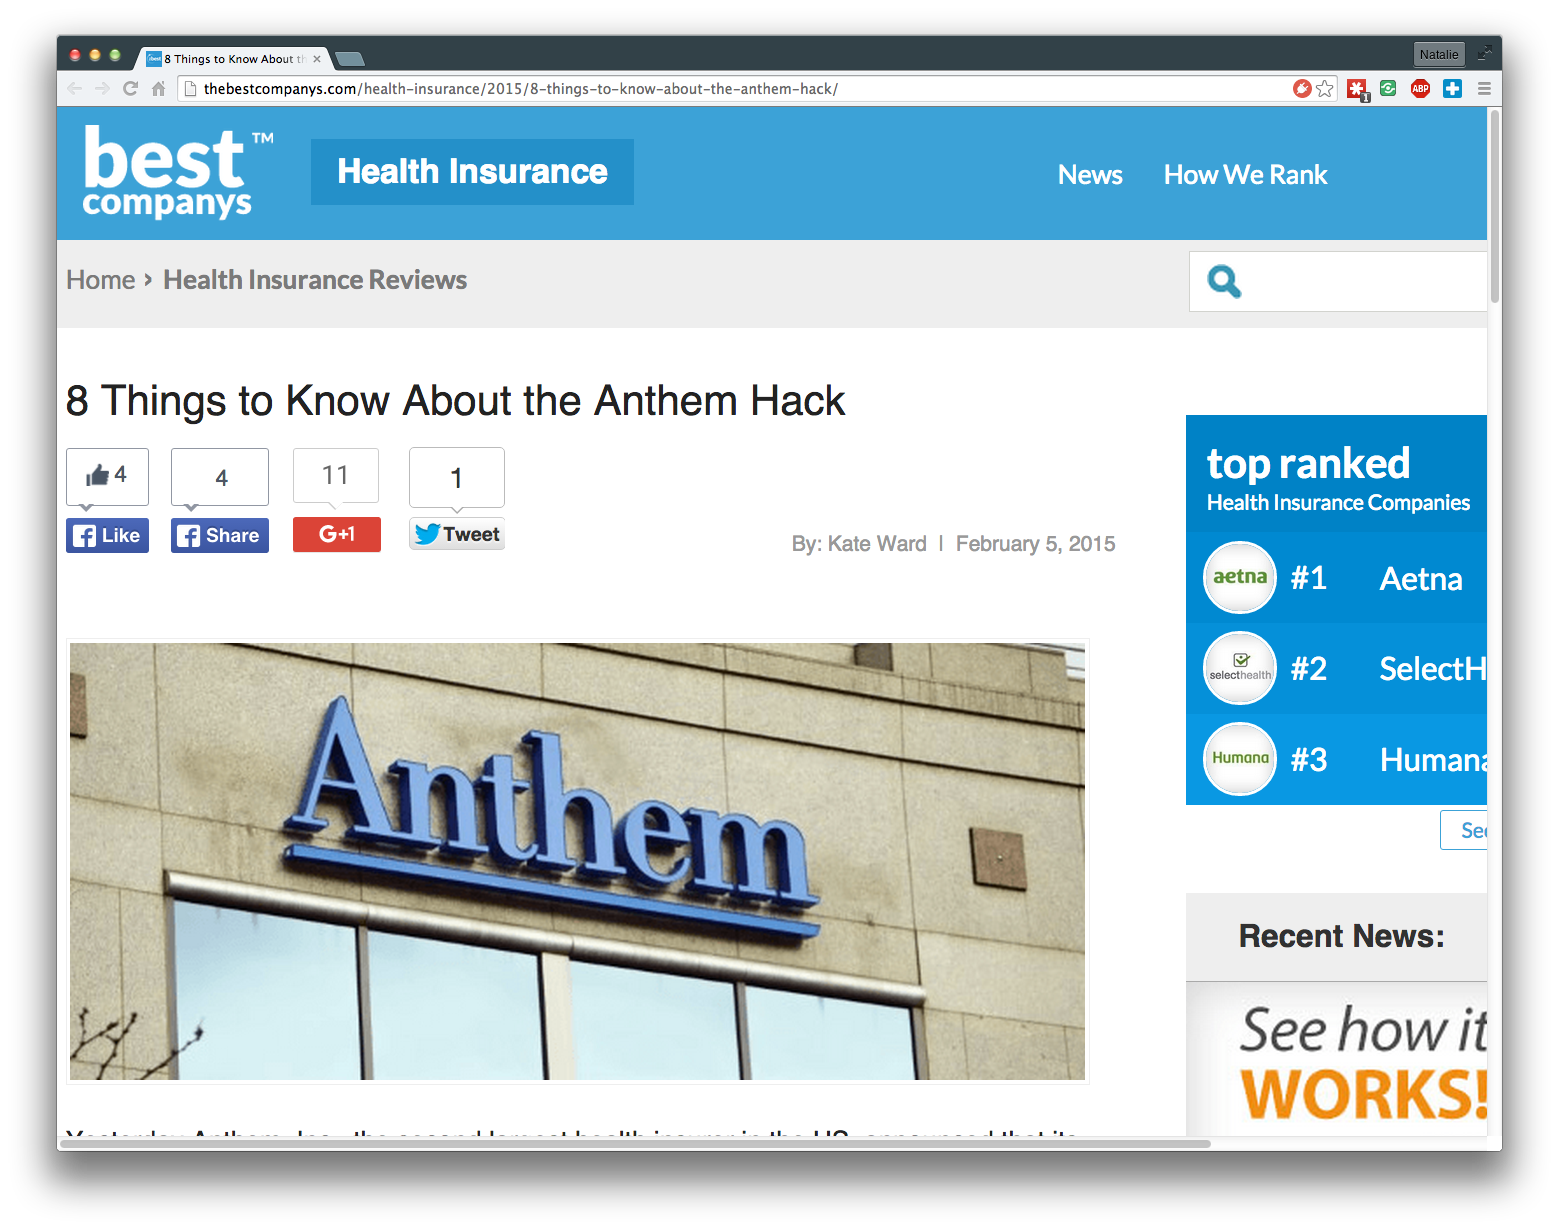 8 Things to Know About the Anthem Hack